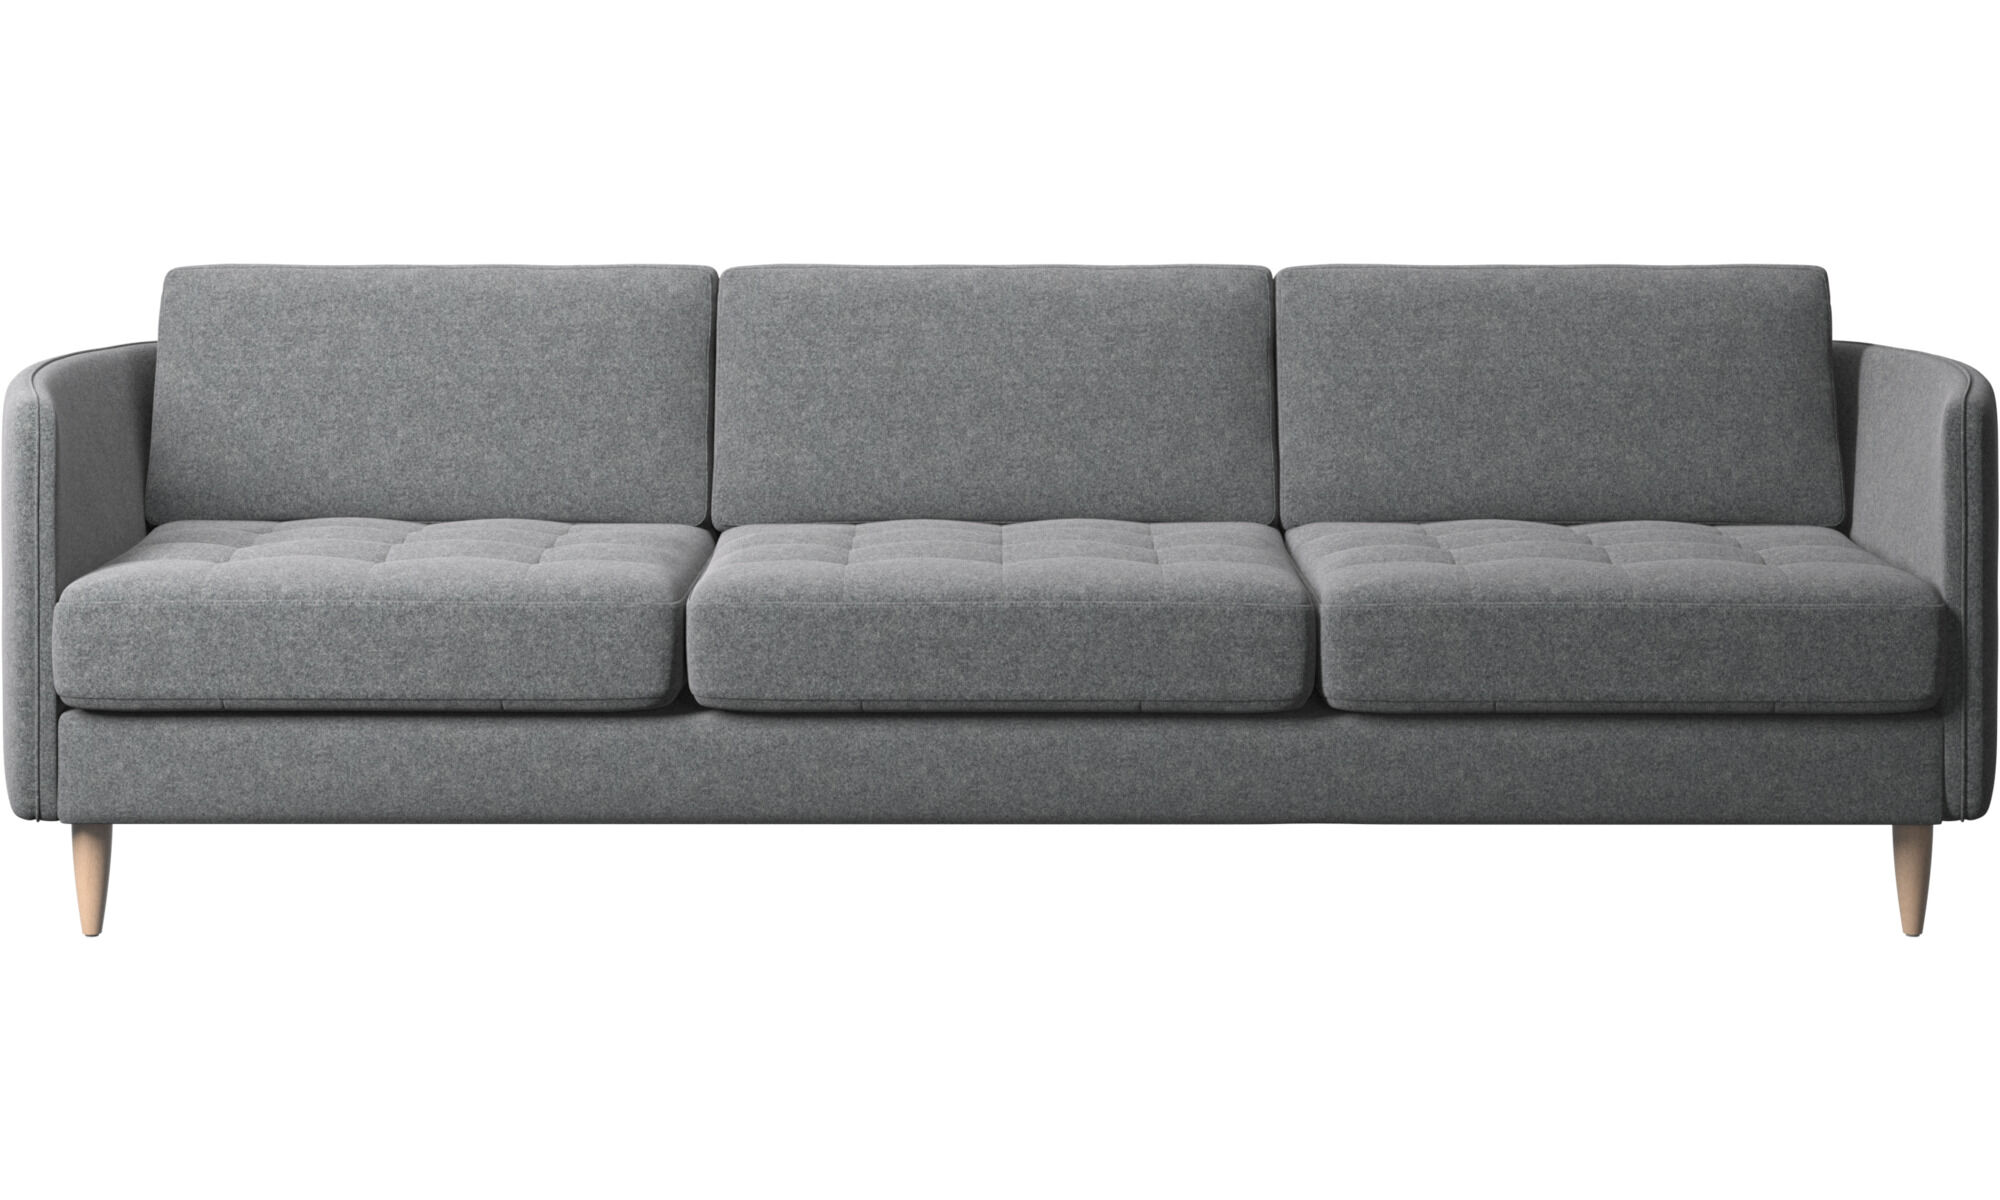 black 3 seater sofa and cuddle chair versailles sofabord modern sofas contemporary design from boconcept osaka tufted seat grey fabric